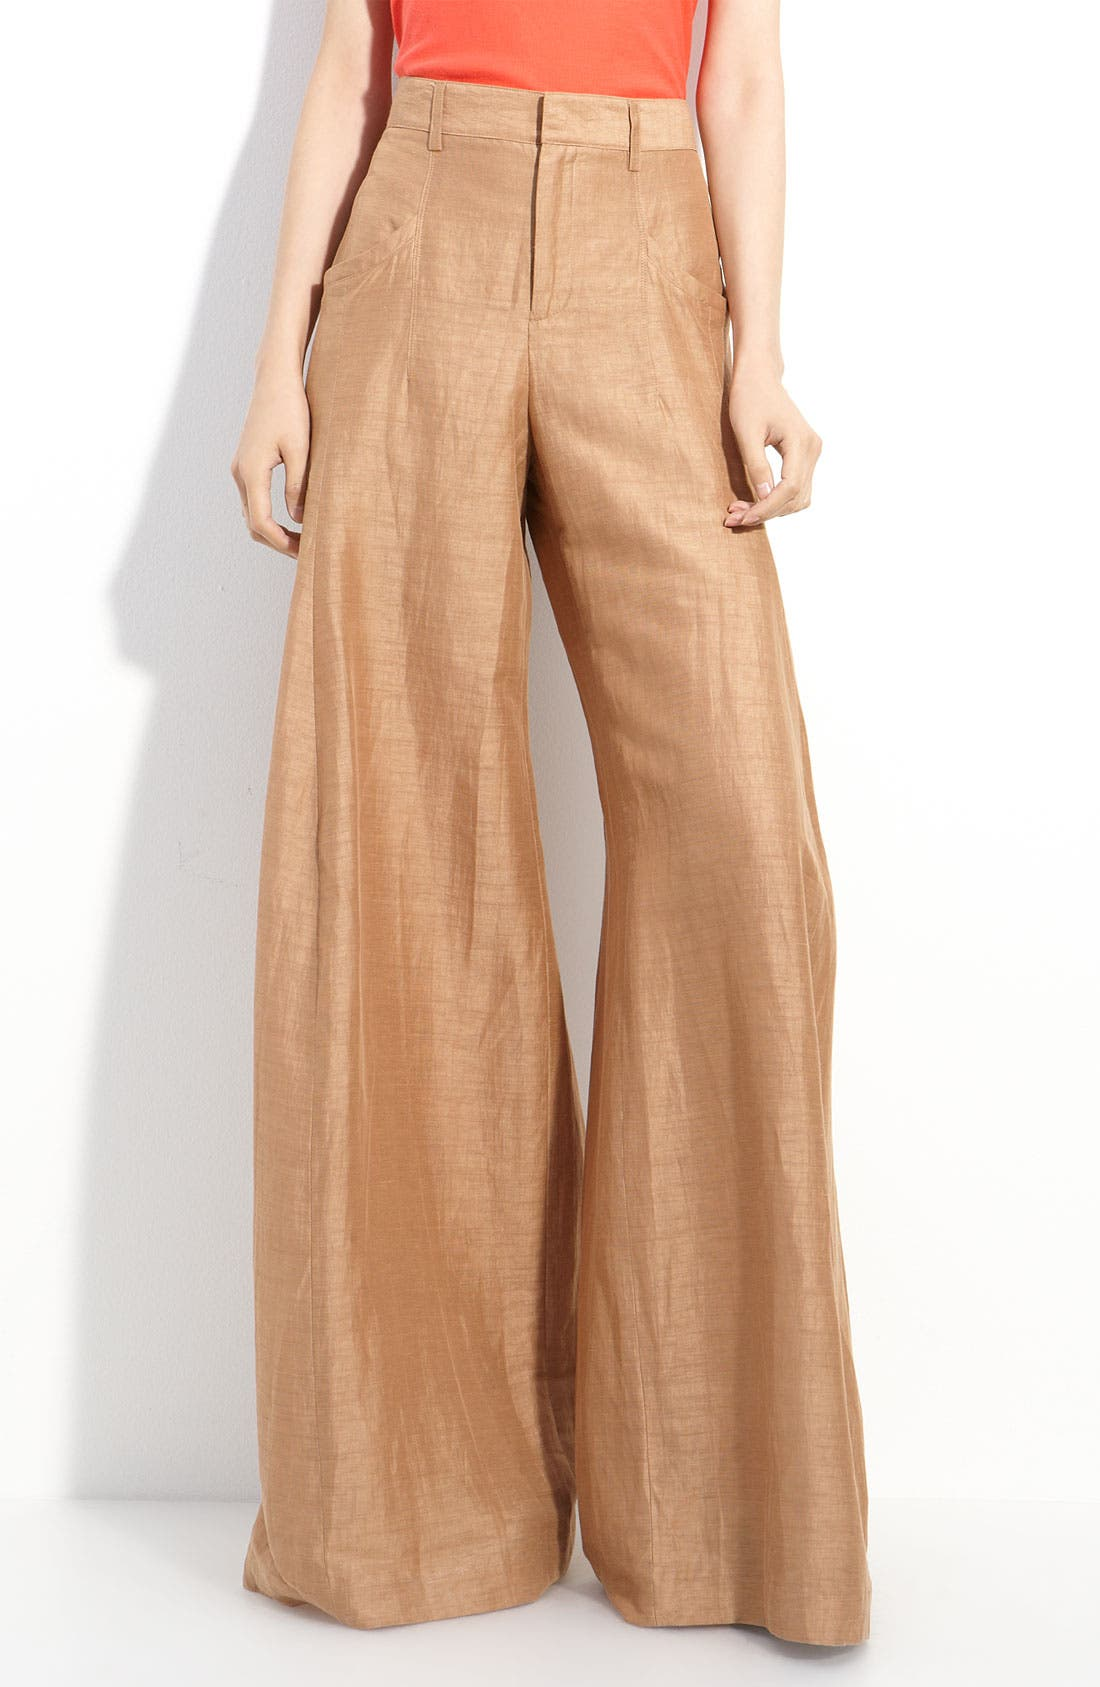 Alternate Image 1 Selected - Theyskens' Theory 'Pluto' Wide Leg Linen Blend Pants